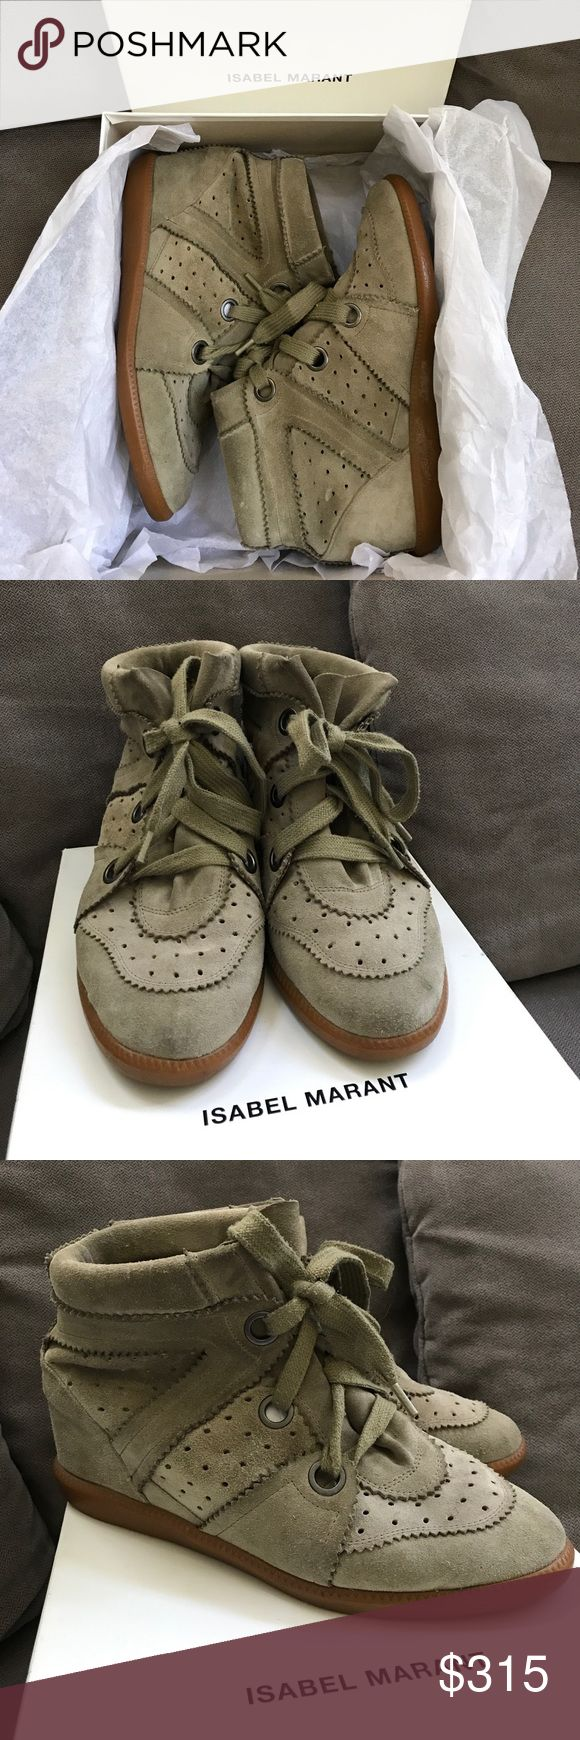 Isabel Marant Bobby Sneakers Stained Velvet Basket Isabel Marant Bobby Sneakers Beige Isabel Marant Shoes Sneakers